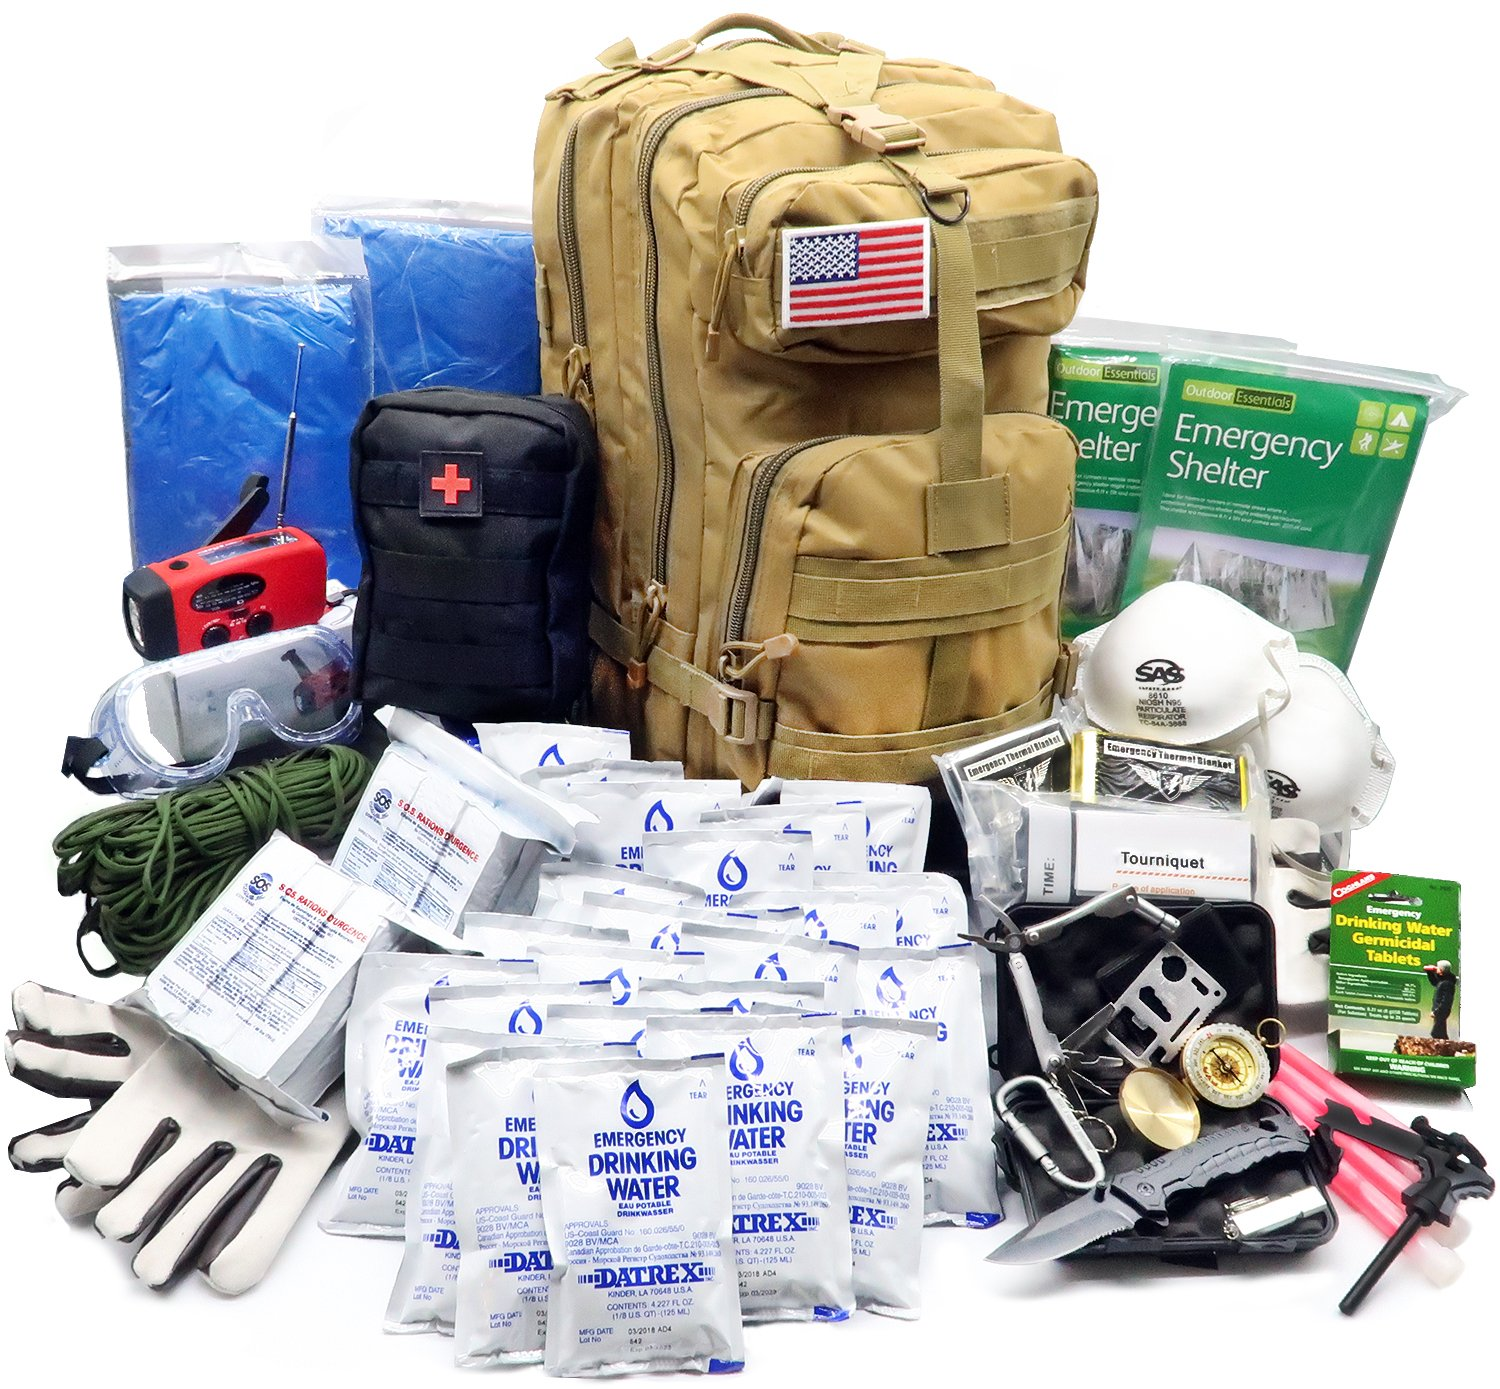 EVERLIT Earthquake Emergency Kits Survival Kit 72 Hrs 2 Person Bug Out Bag for Hurricanes, Floods, Tsunami, Other Disasters,Include Food Water, Gear, Hand-Crank Charger and More by EVERLIT